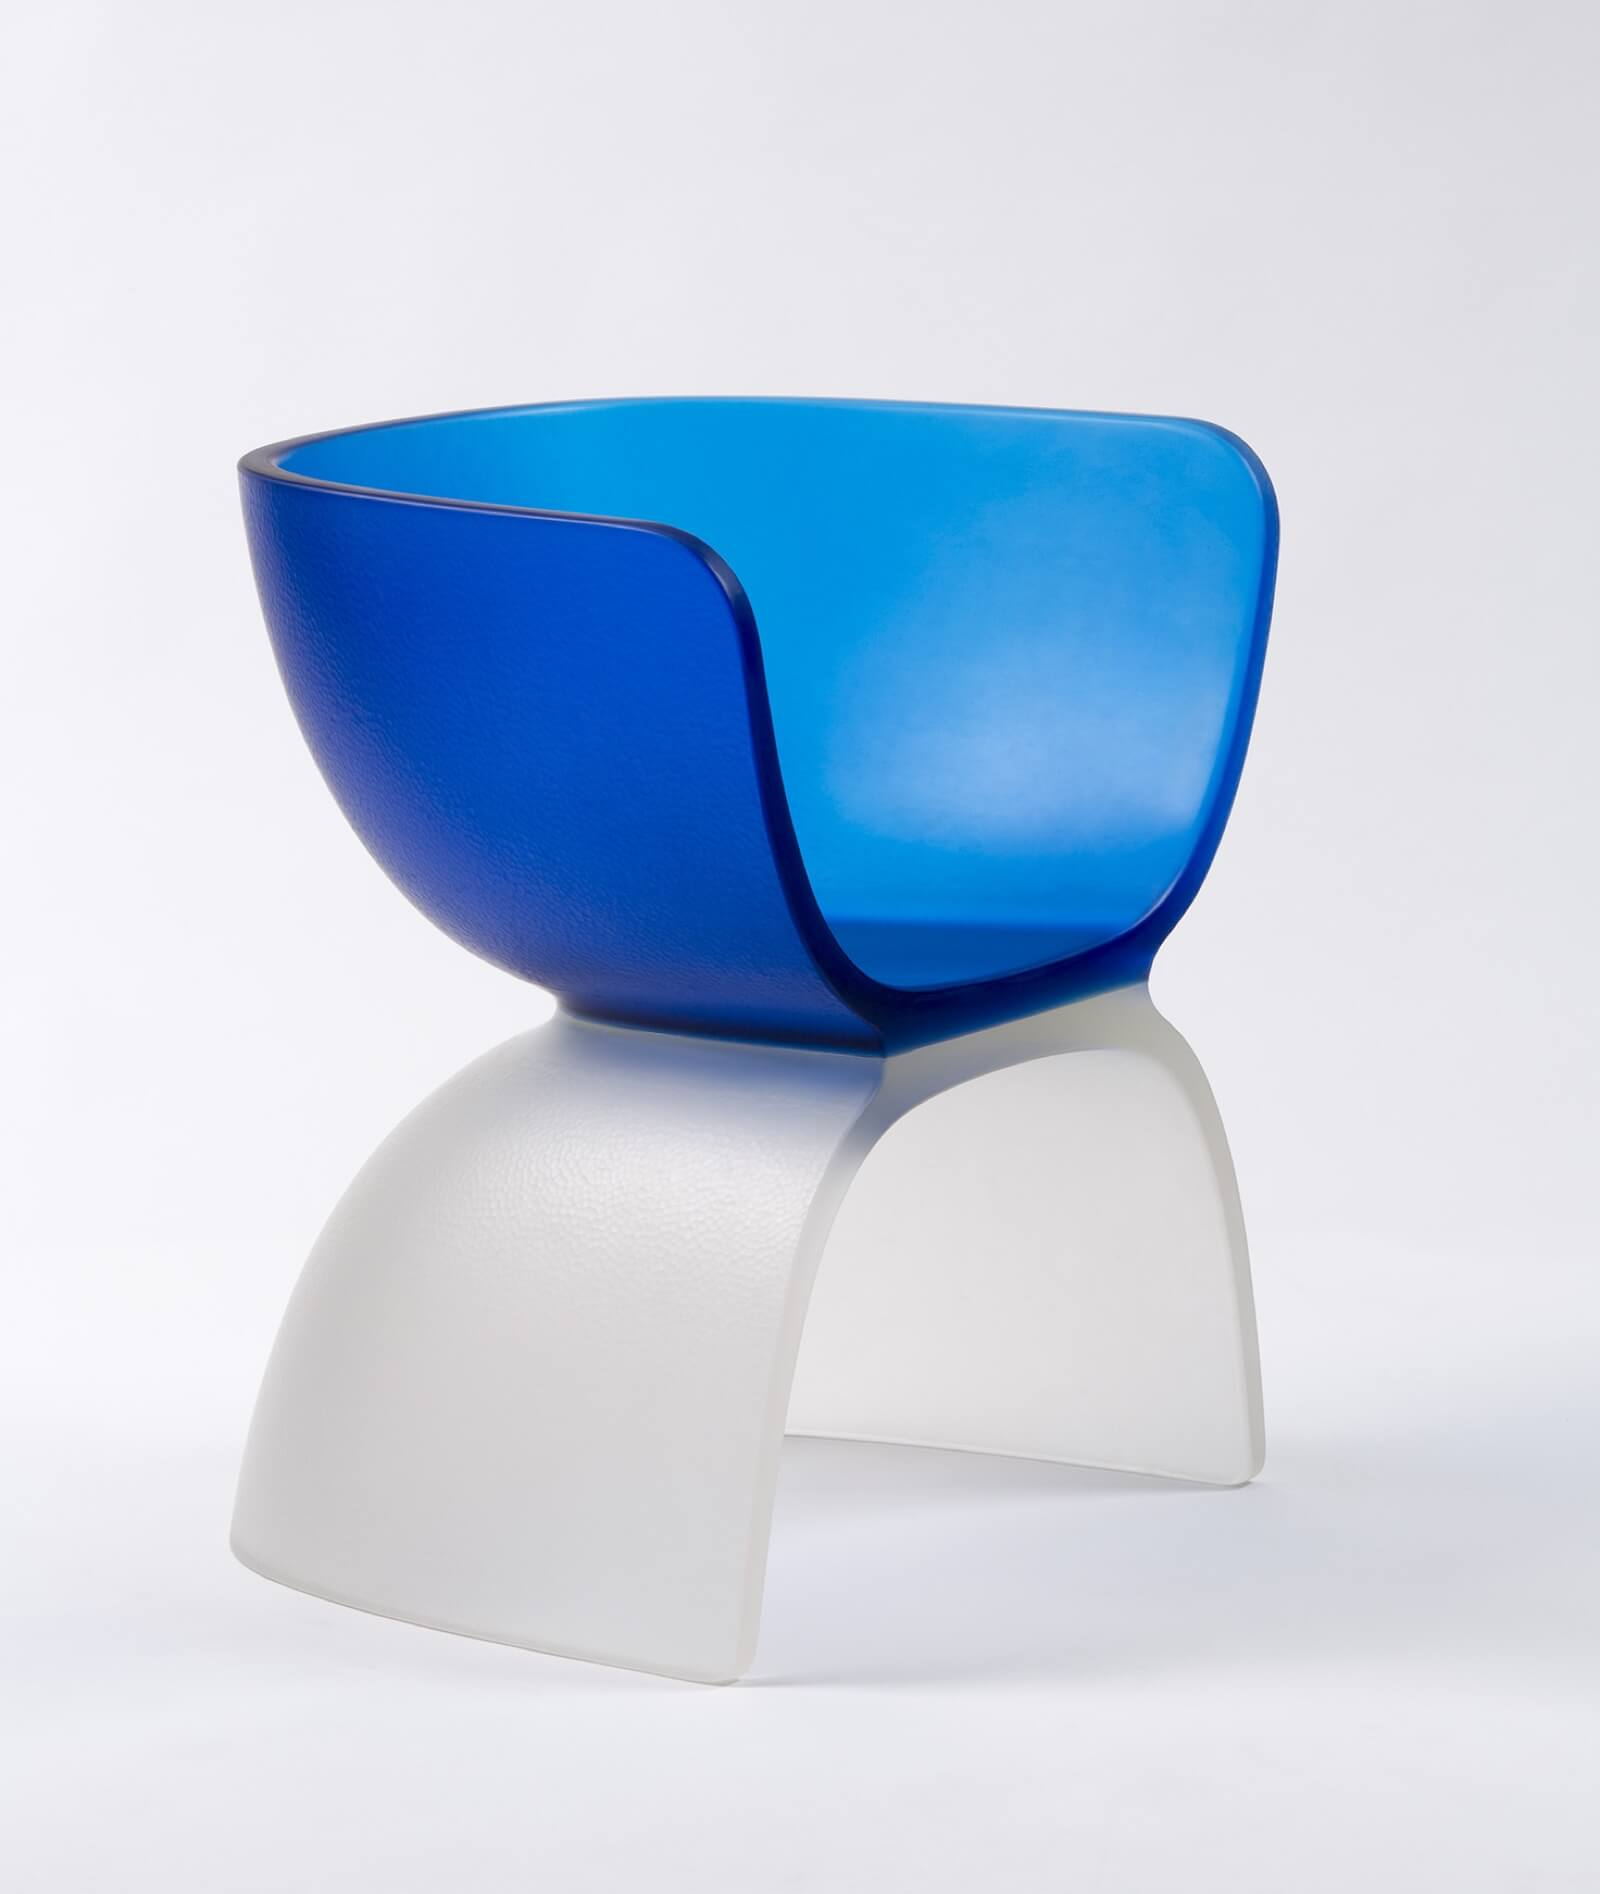 Marc Newson, 'Blue Glass Chair', 2017 © Marc Newson. COURTESY: Gagosian / PHOTOGRAPH: Jaroslav Kvíz.